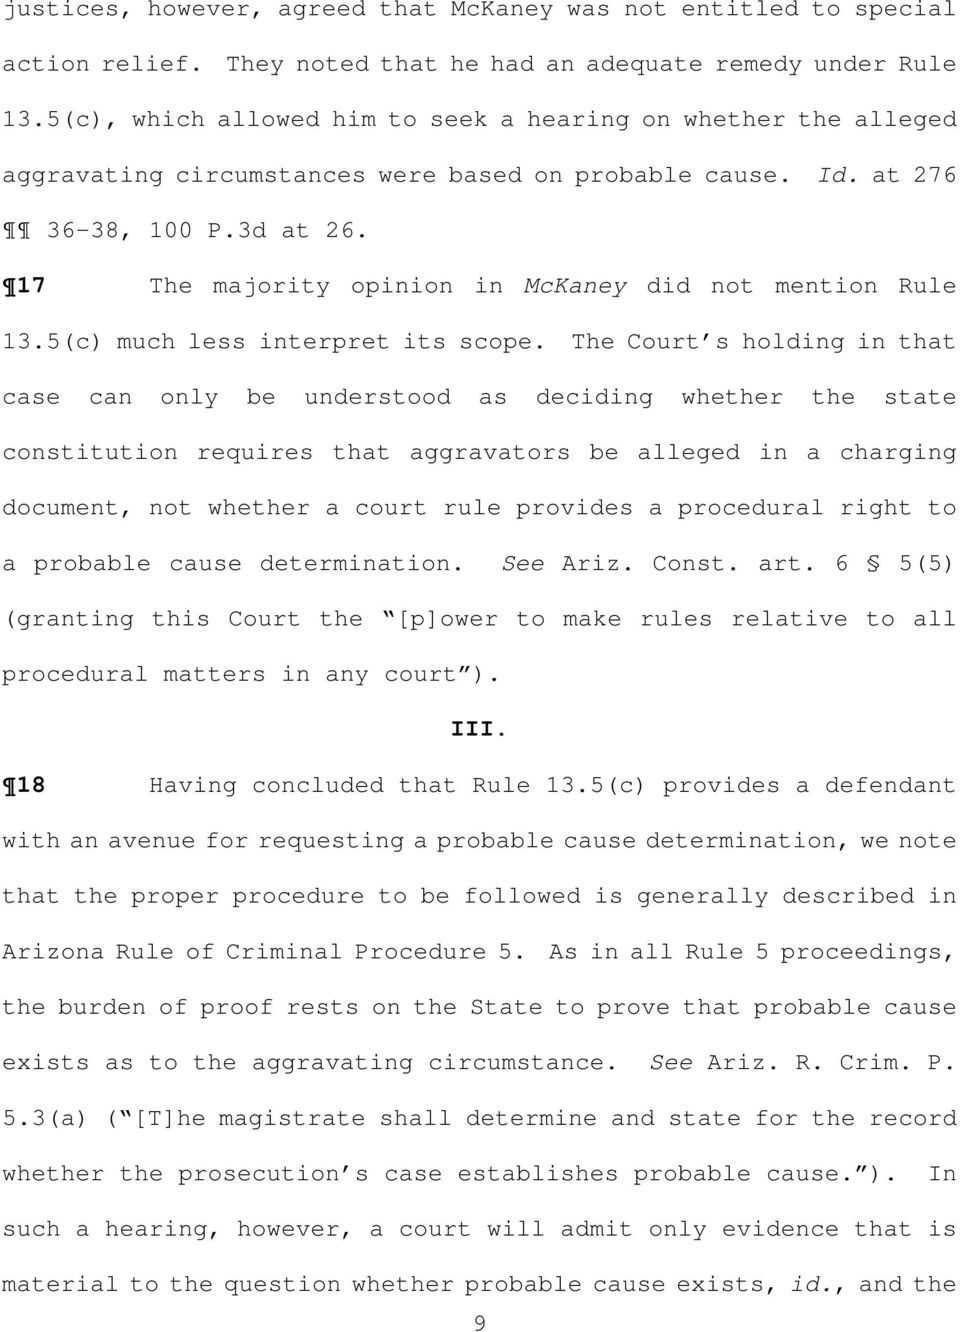 17 The majority opinion in McKaney did not mention Rule 13.5(c) much less interpret its scope.